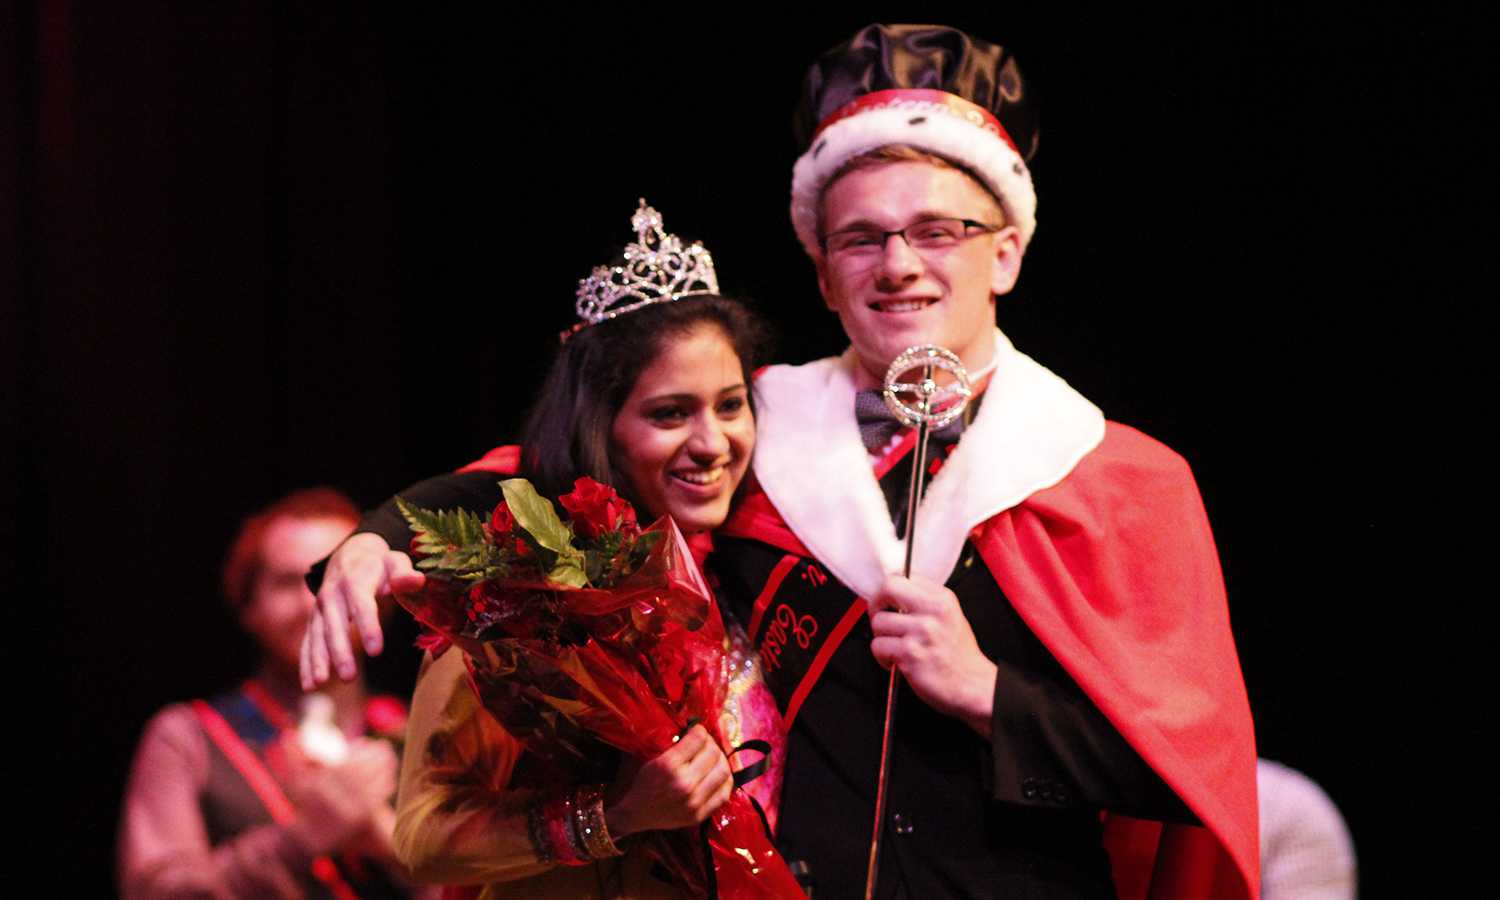 Sapna Basy, sophomore, was crowned Ms. Eastern alongside Bryce Dressler, sophomore, who was crowned Mr. Eastern on Oct. 27.